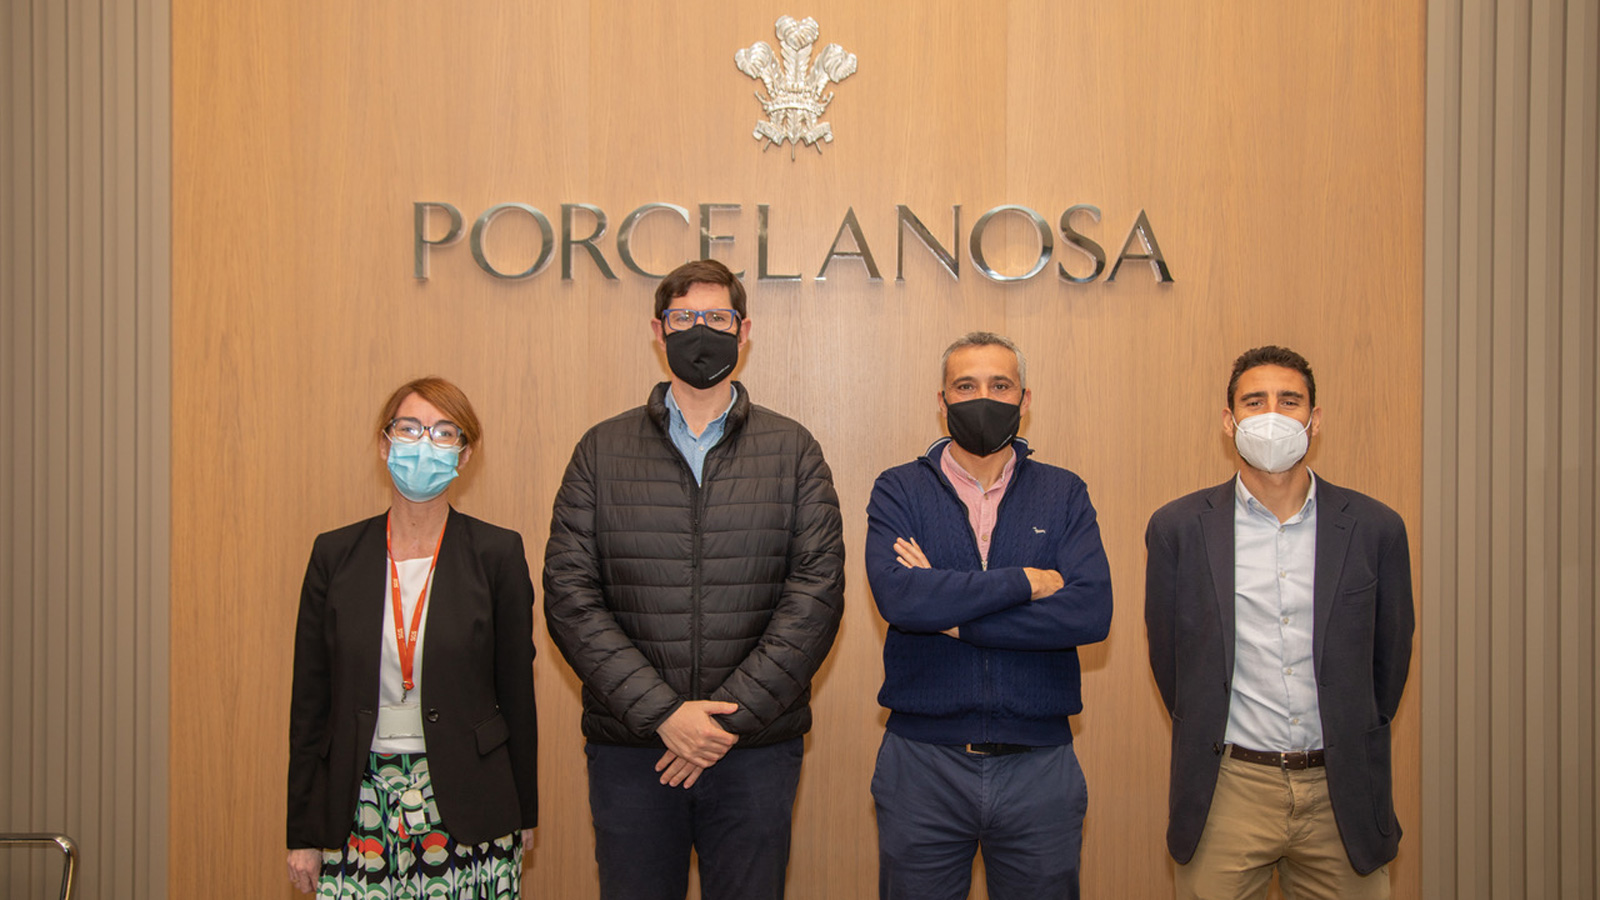 PORCELANOSA achieves Zero Waste certification for its commitment to sustainability